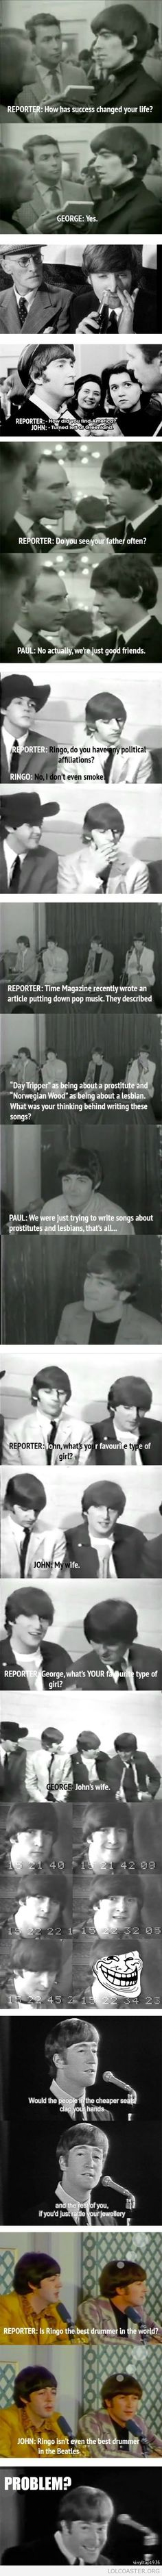 Best freakin Beatles funny meme ever.  Love these quotes.  Hope they are true. ;)